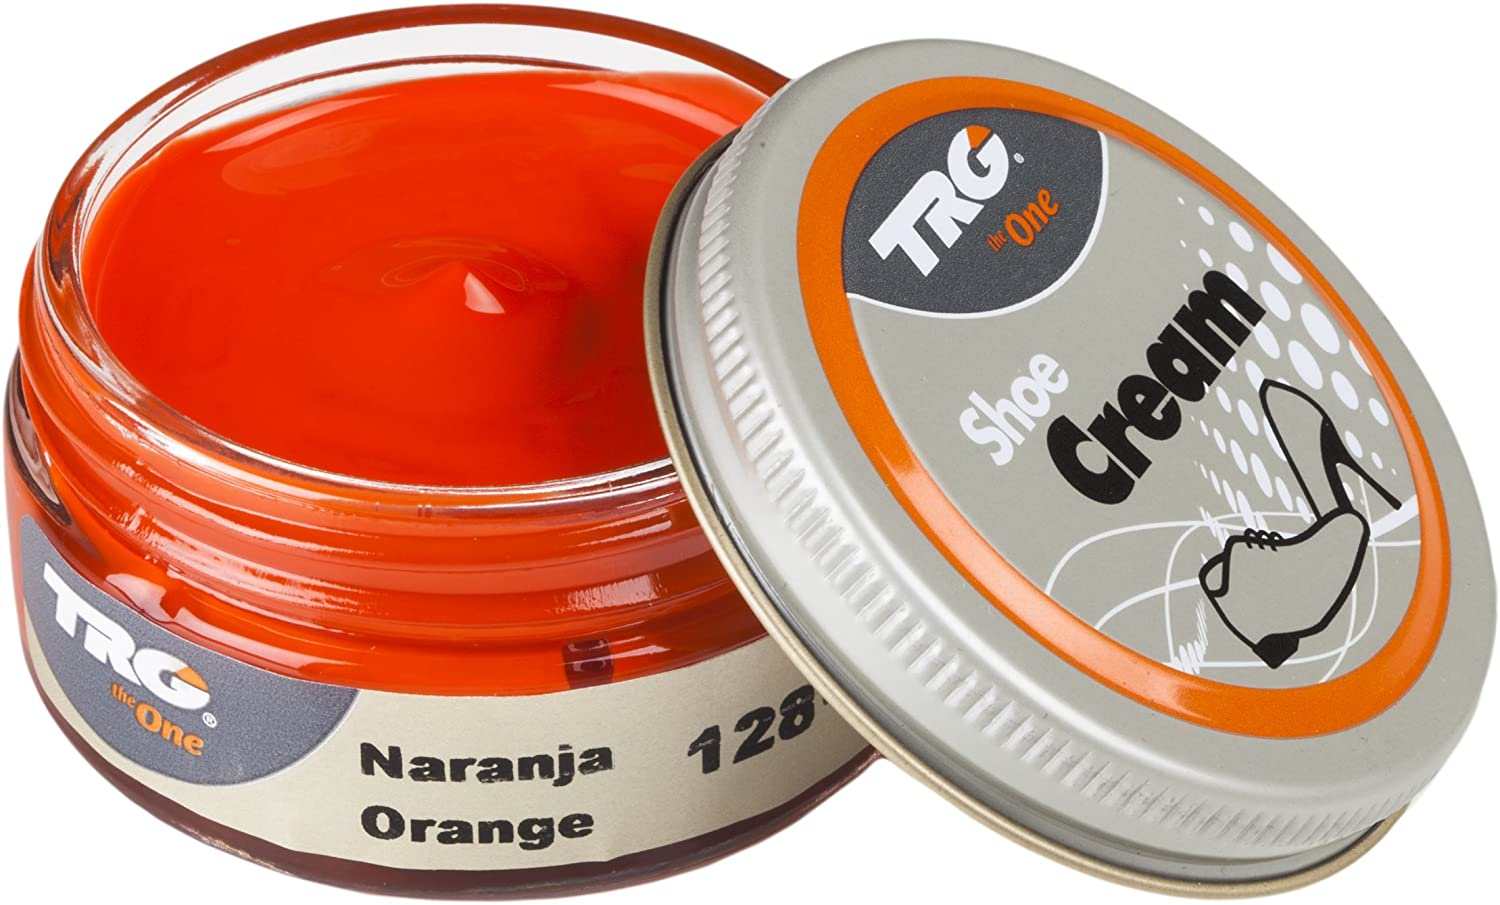 TRG Leather Cream Shoes for Bags, Nourishment and Care, Many Colors, 1.7 fl.Oz (128 - Orange)